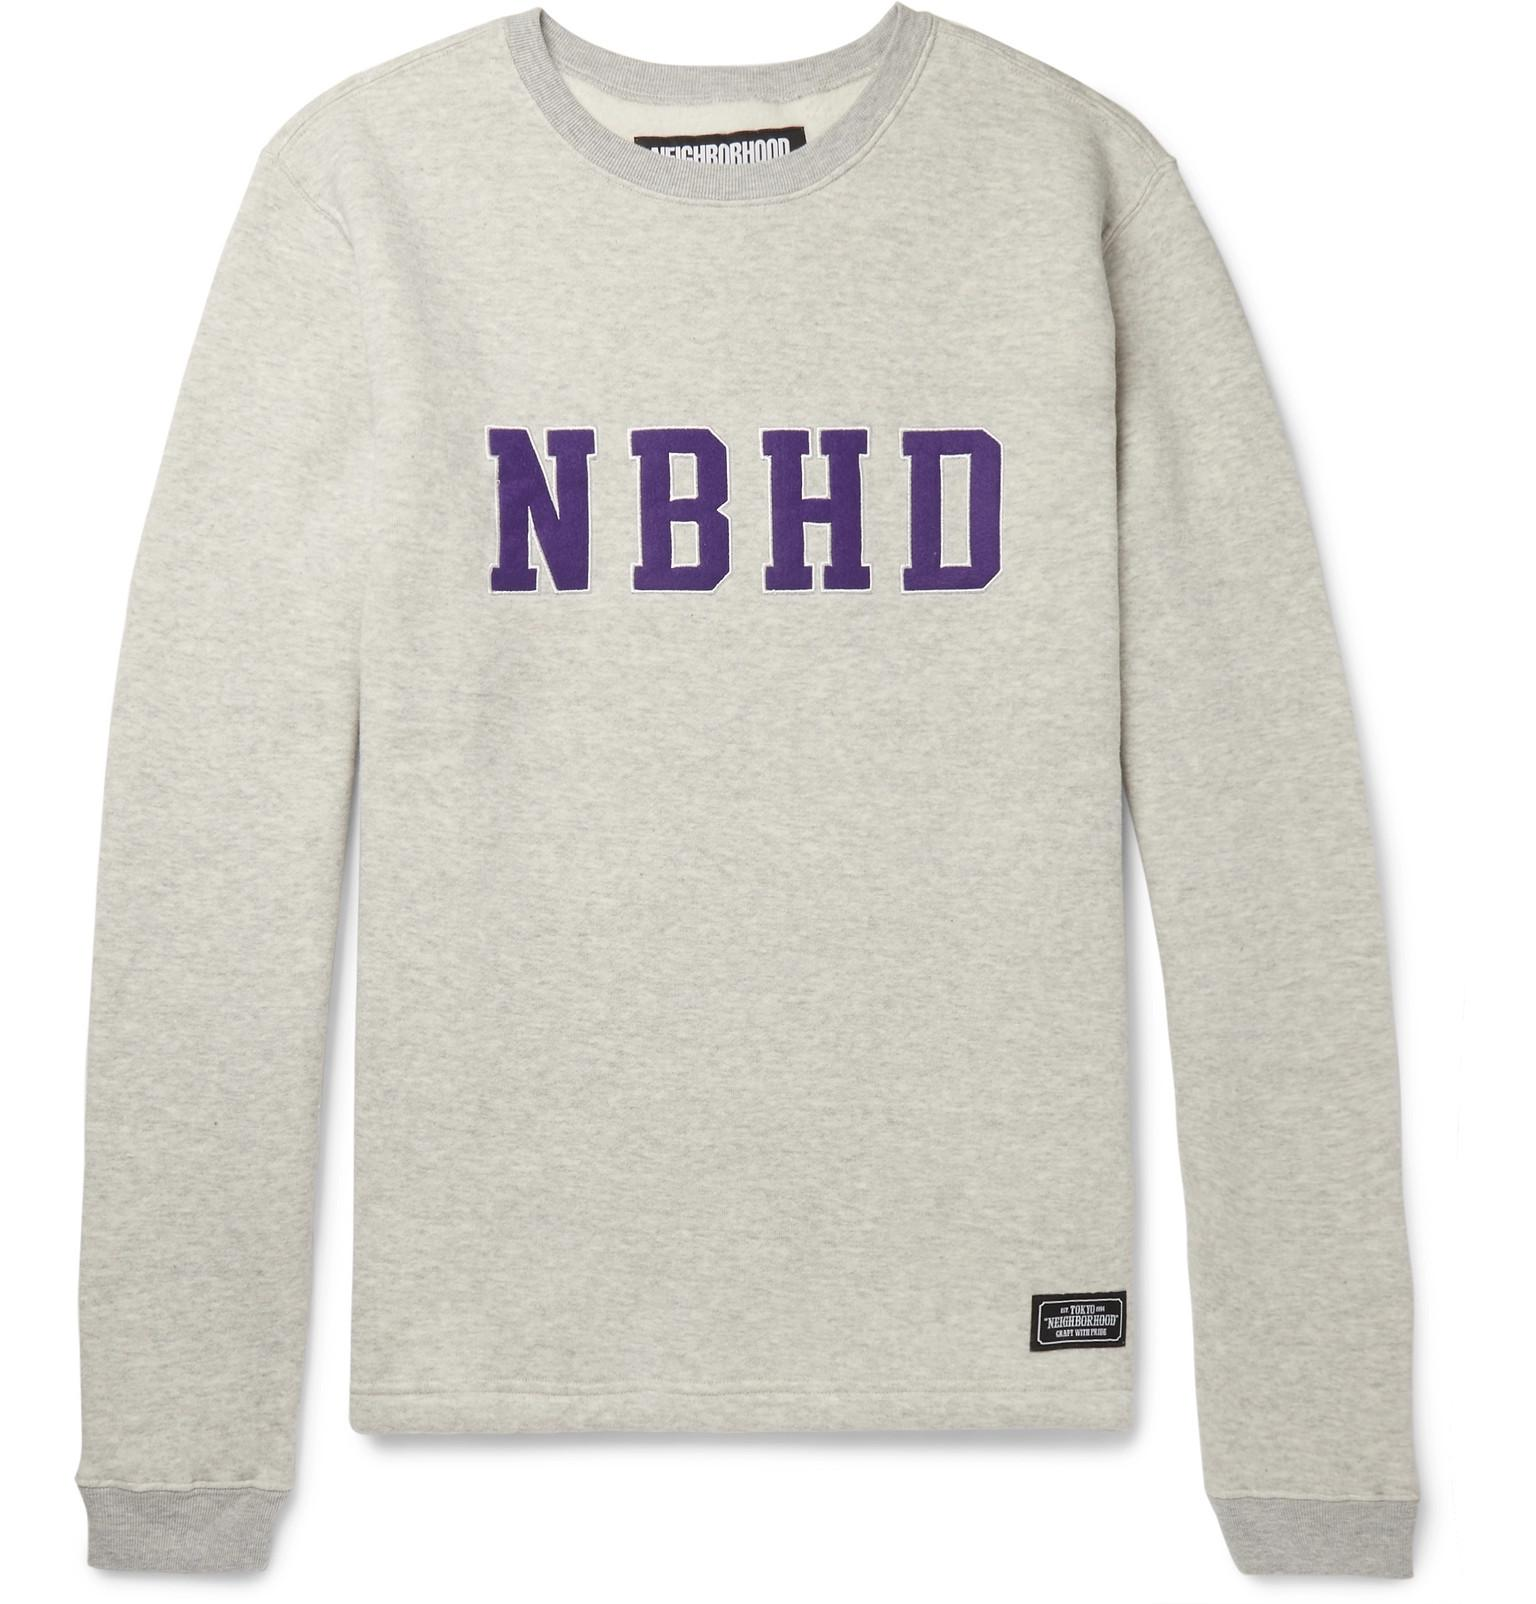 Fleece Mélange Neighborhood Jersey Fullscreen Back View Gray For Cotton Logo Appliquéd Men Sweatshirt wIBHBt